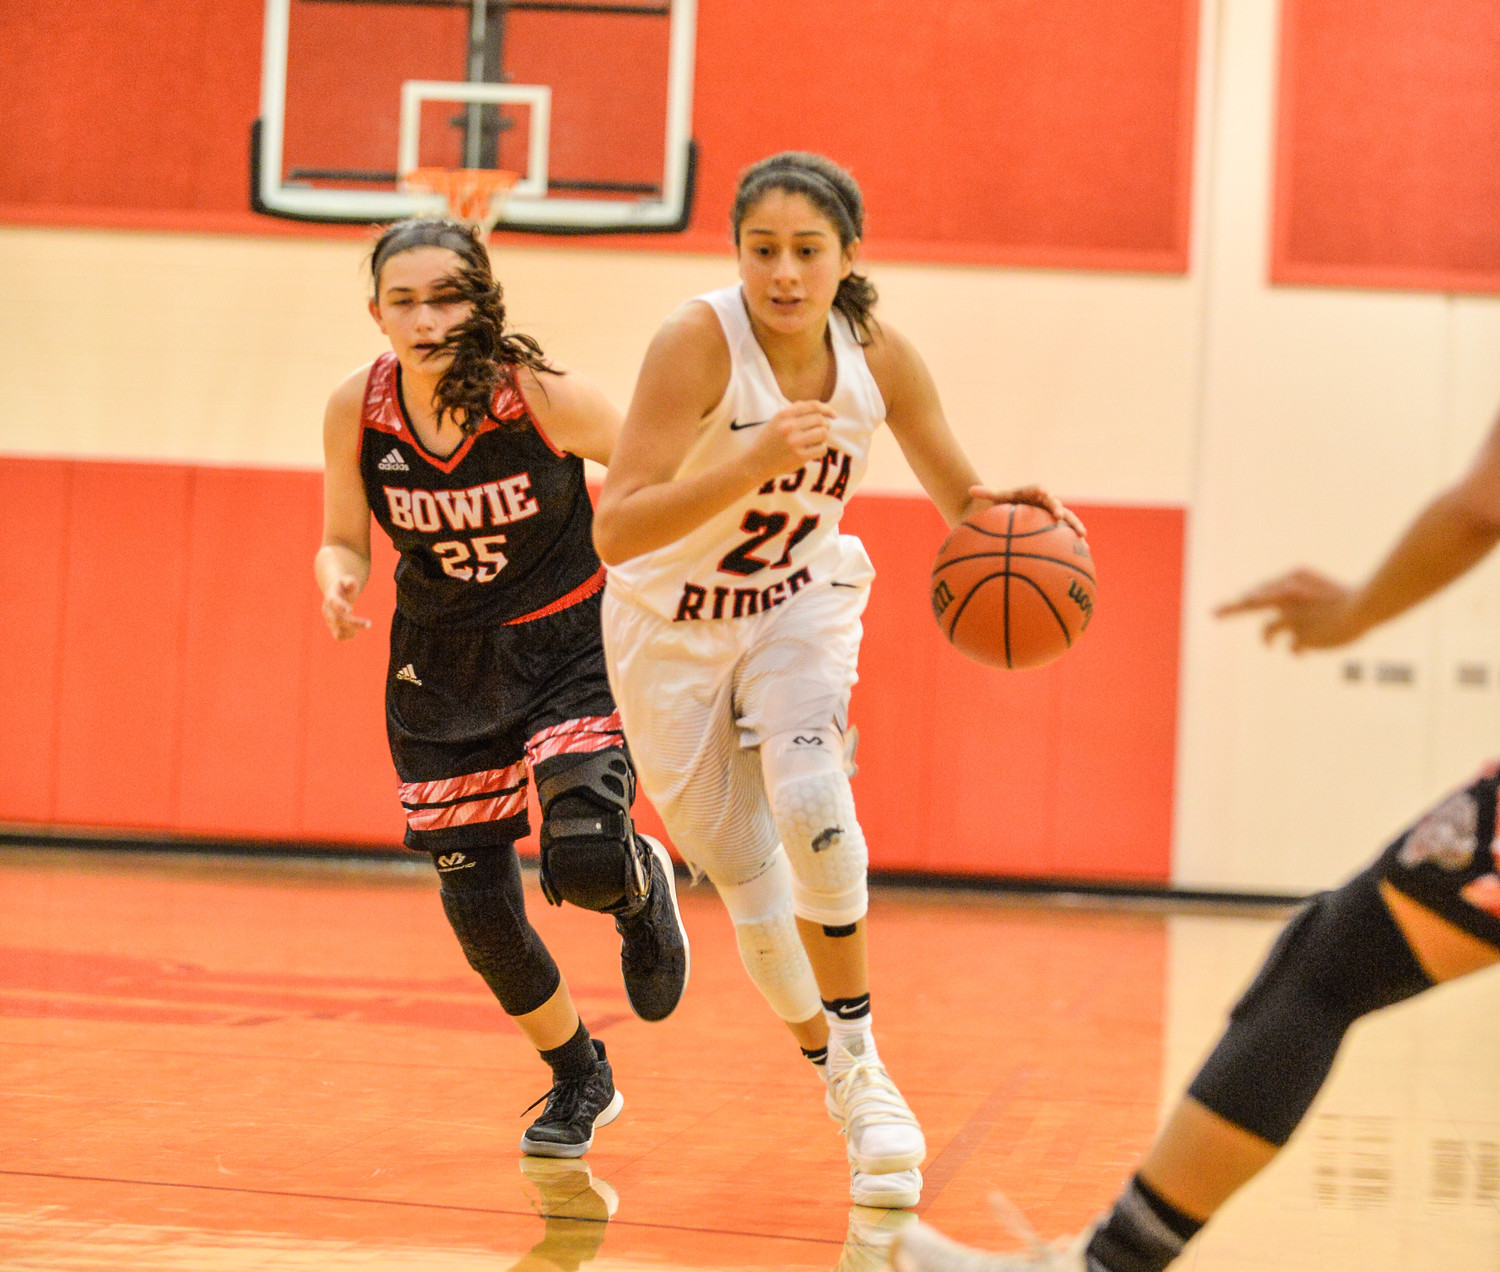 Victoria Baker scored a team-high 18 points and Vista Ridge beat Bowie 68-60 on Tuesday night.